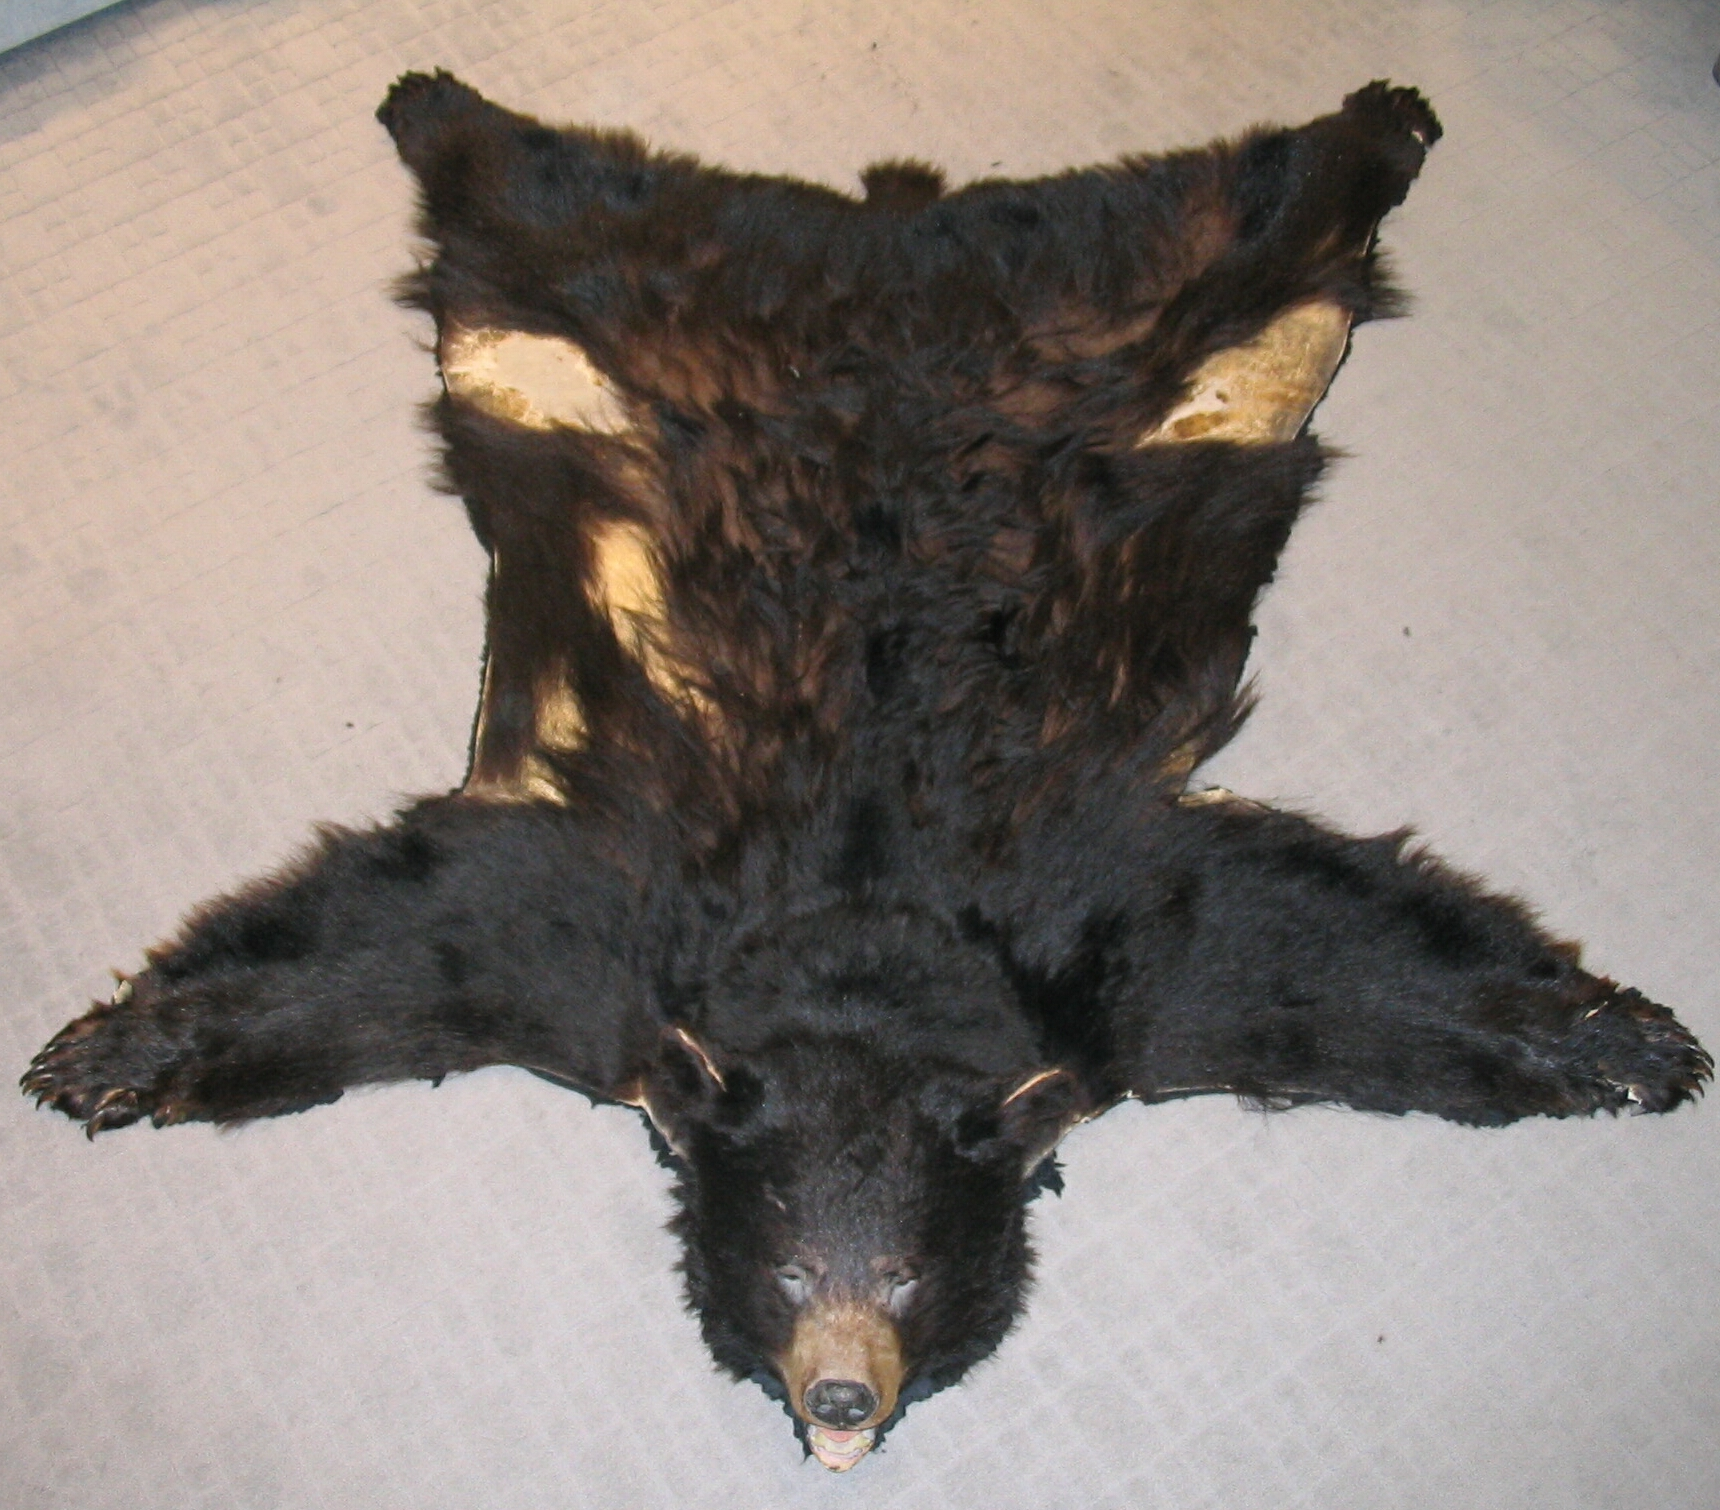 File:Black bear skin with taxidermied head.JPG - Wikimedia ...